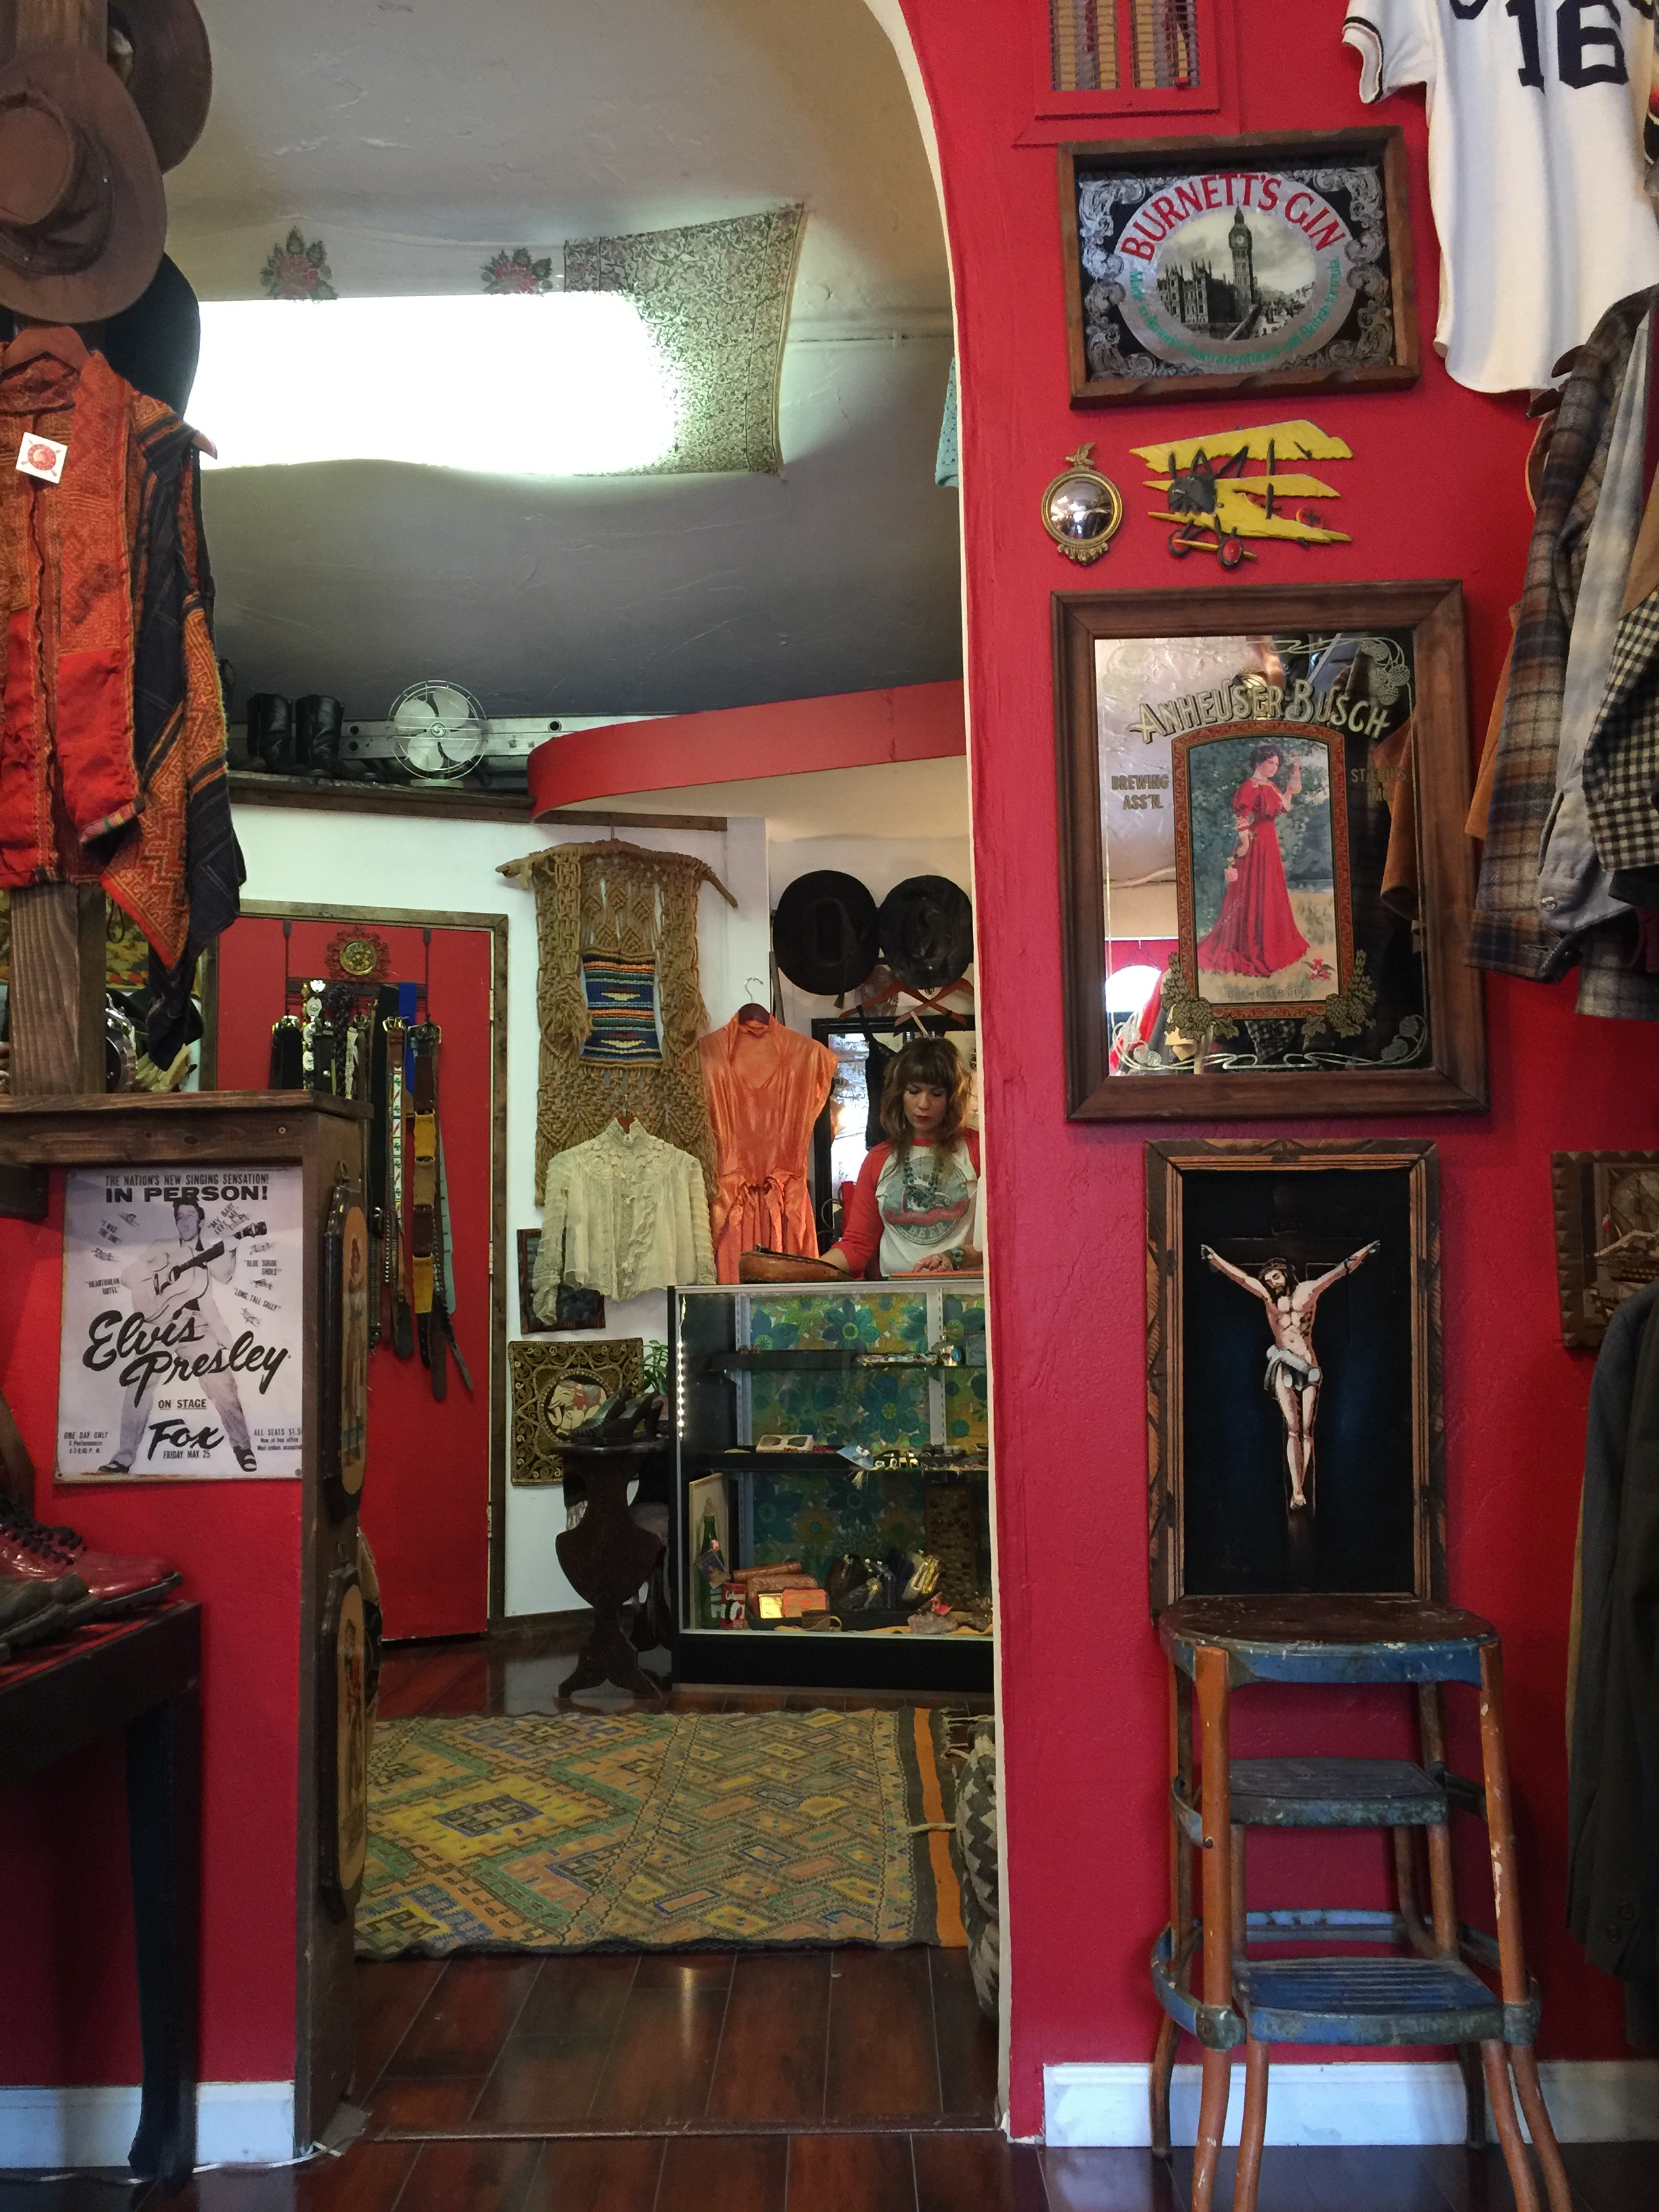 Edwardian blouses, 30s party dresses, southwest casual, and a boatload of hats are common finds at Racks.